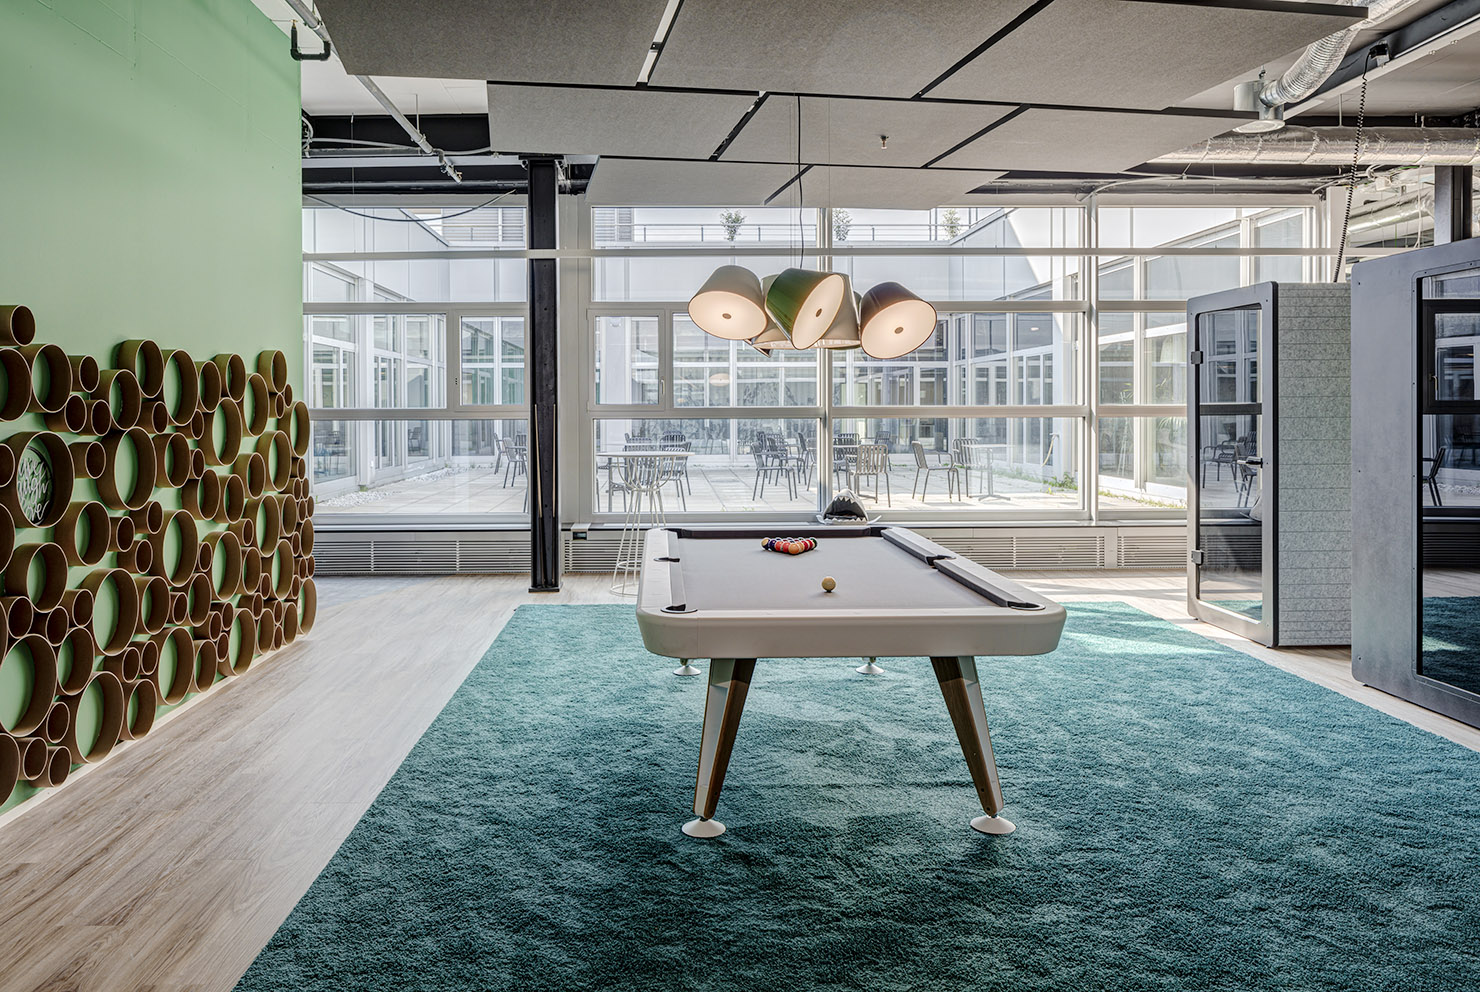 Billiardtisch im Coworking Office Limmatstadt Spreitenbach Office LAB Community Zone